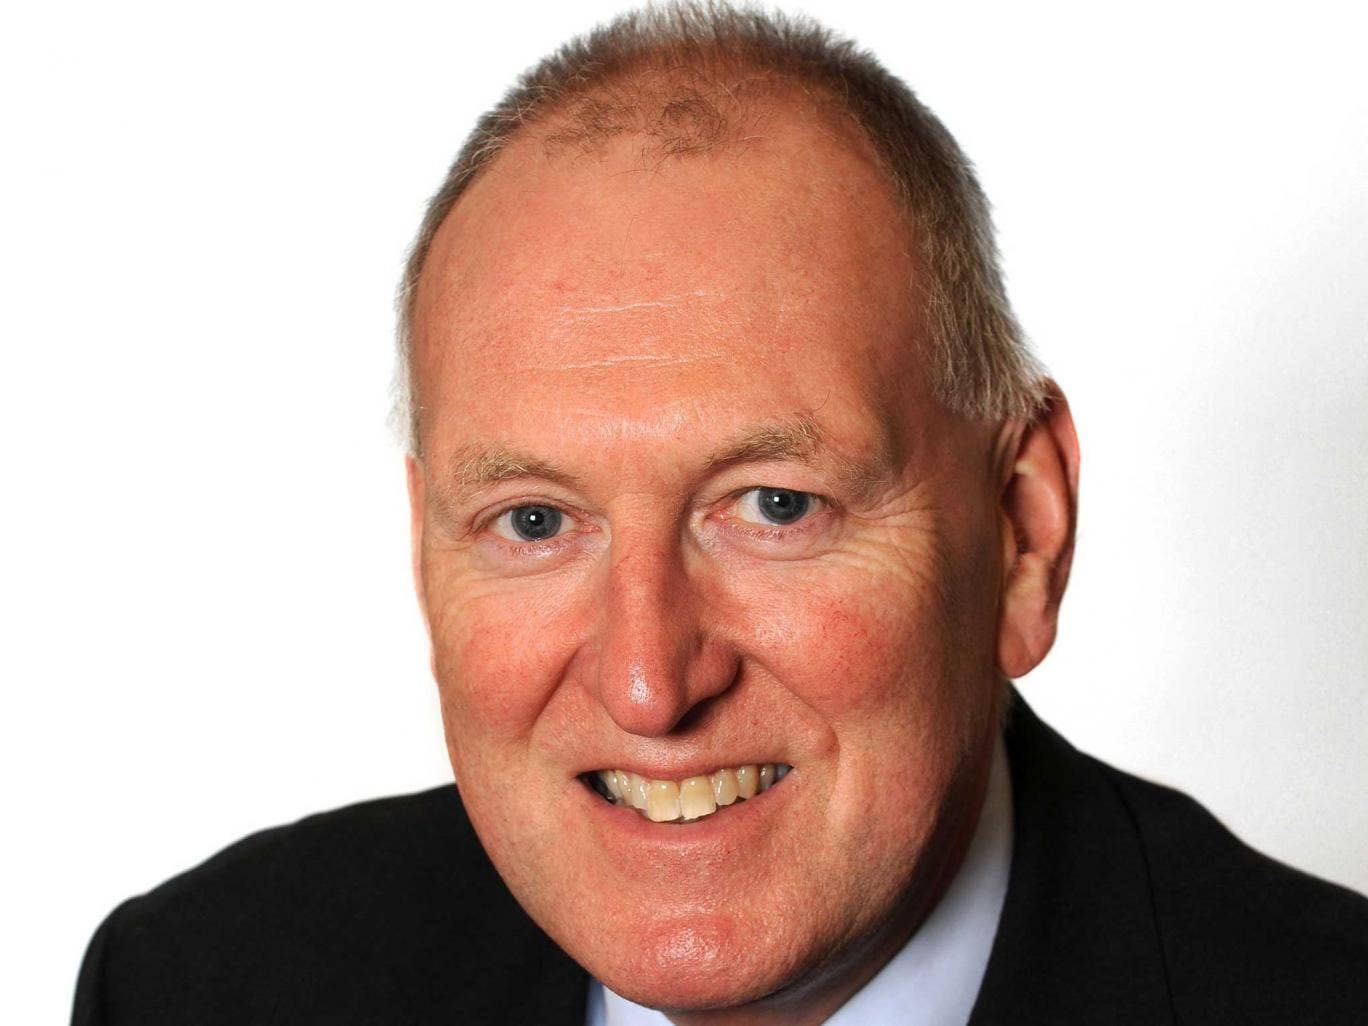 Labour MP Paul Goggins has died a week after collapsing on run